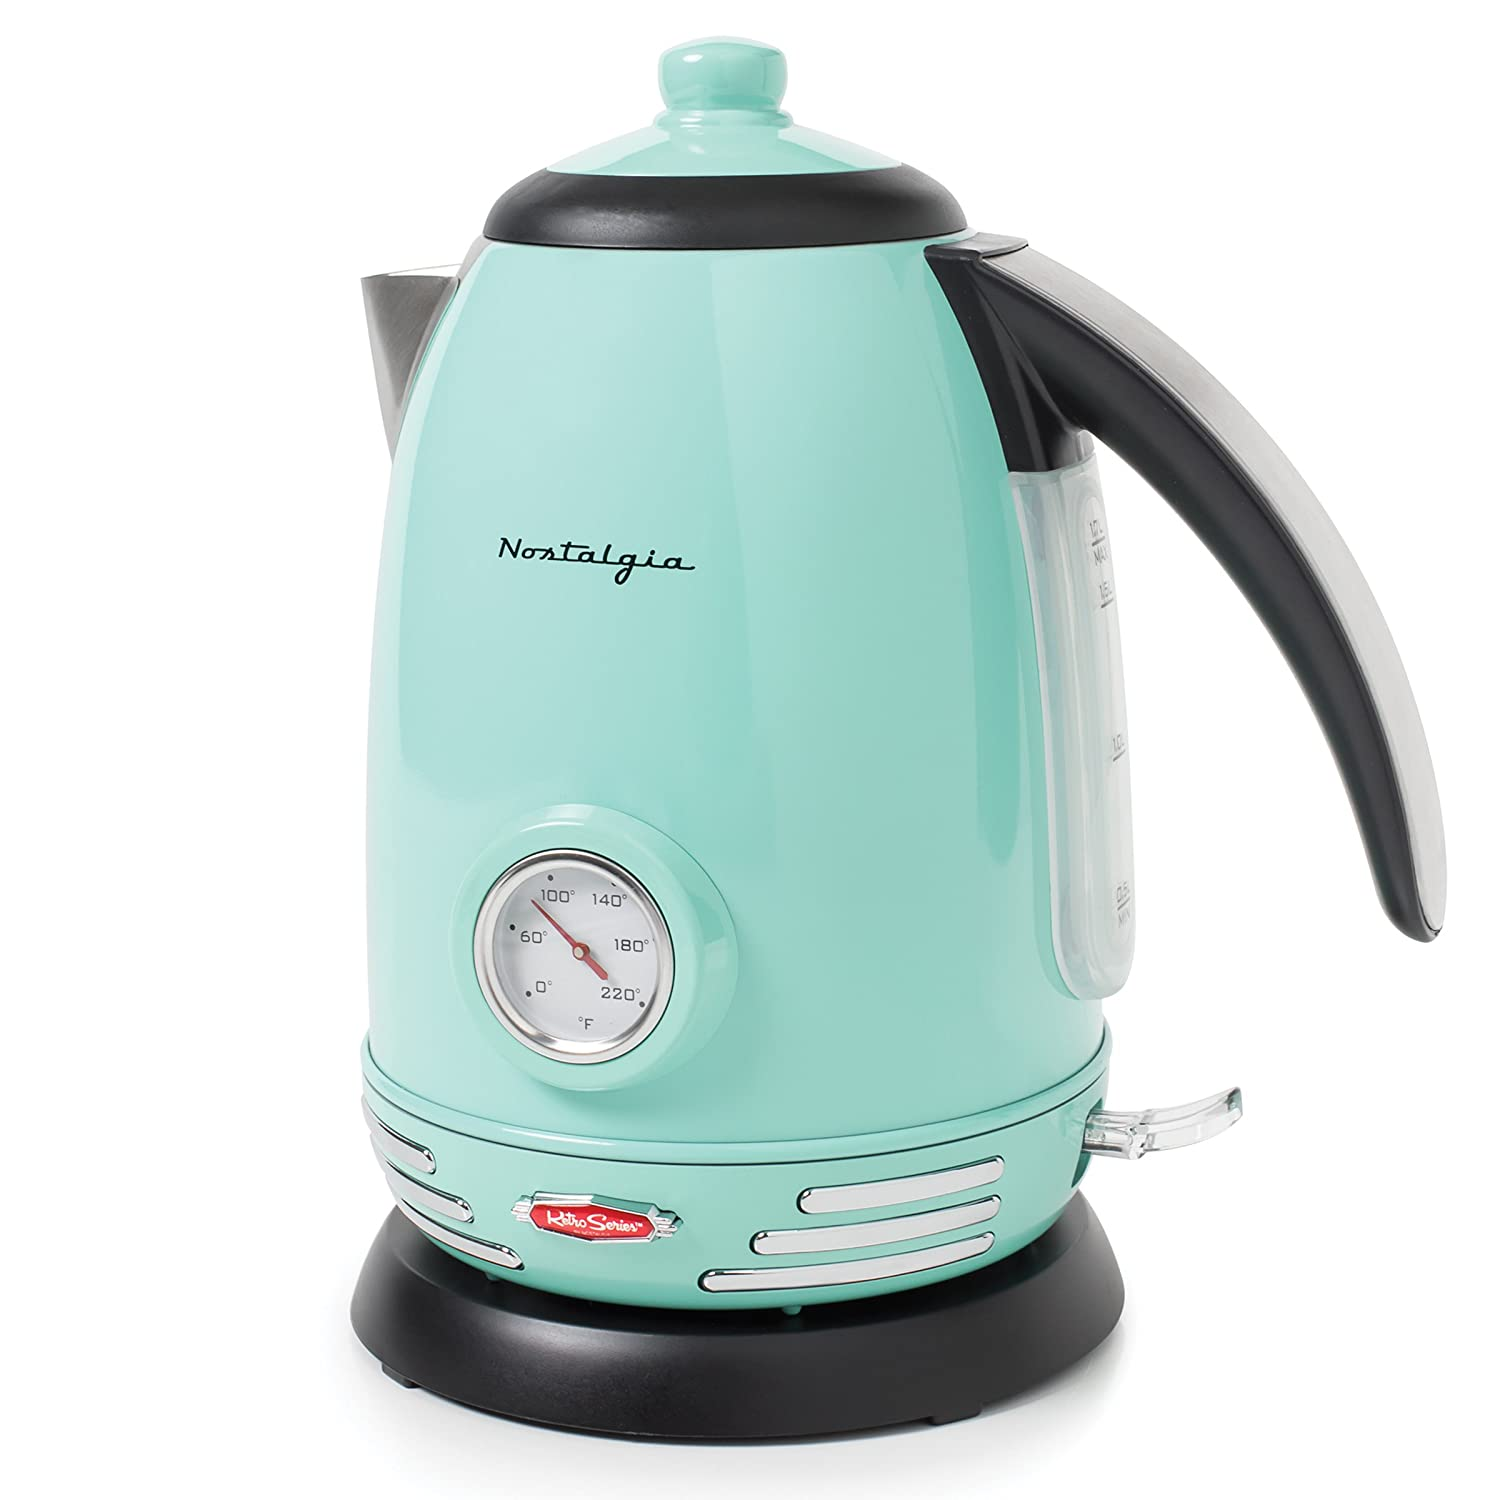 Nostalgia RWK150AQ Retro Stainless Steel Electric Water Kettle, 1.7 L, Aqua